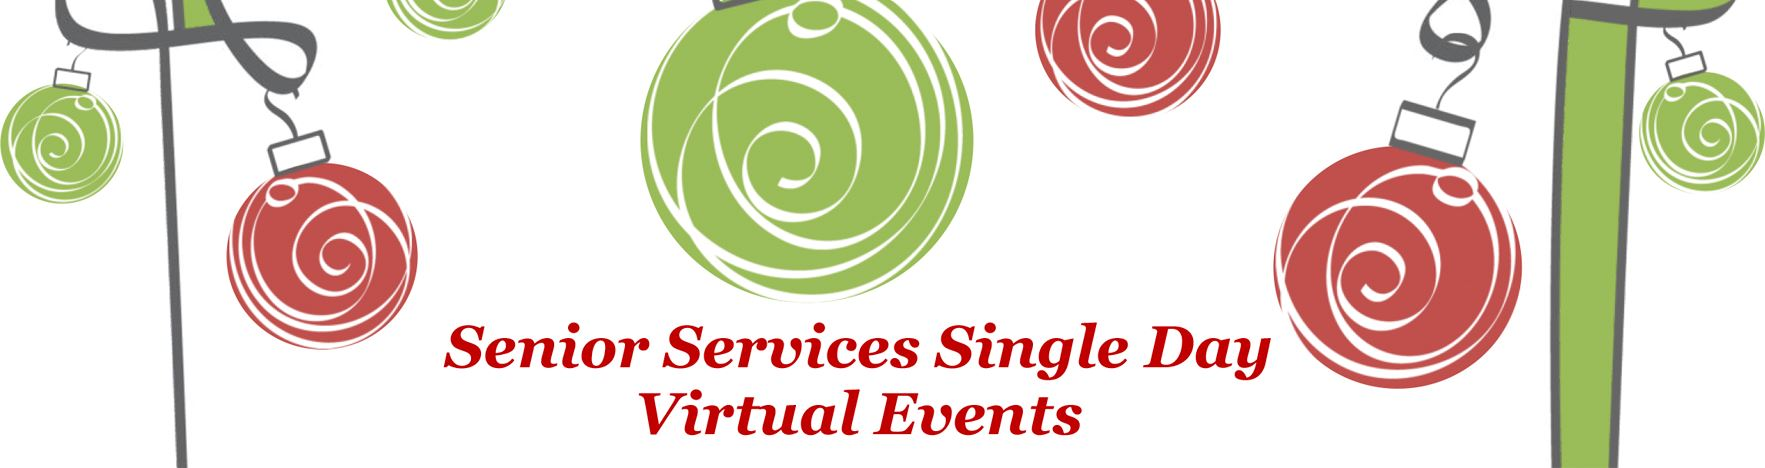 Single Day Events Banner - Dec 2020 Parks n Rec